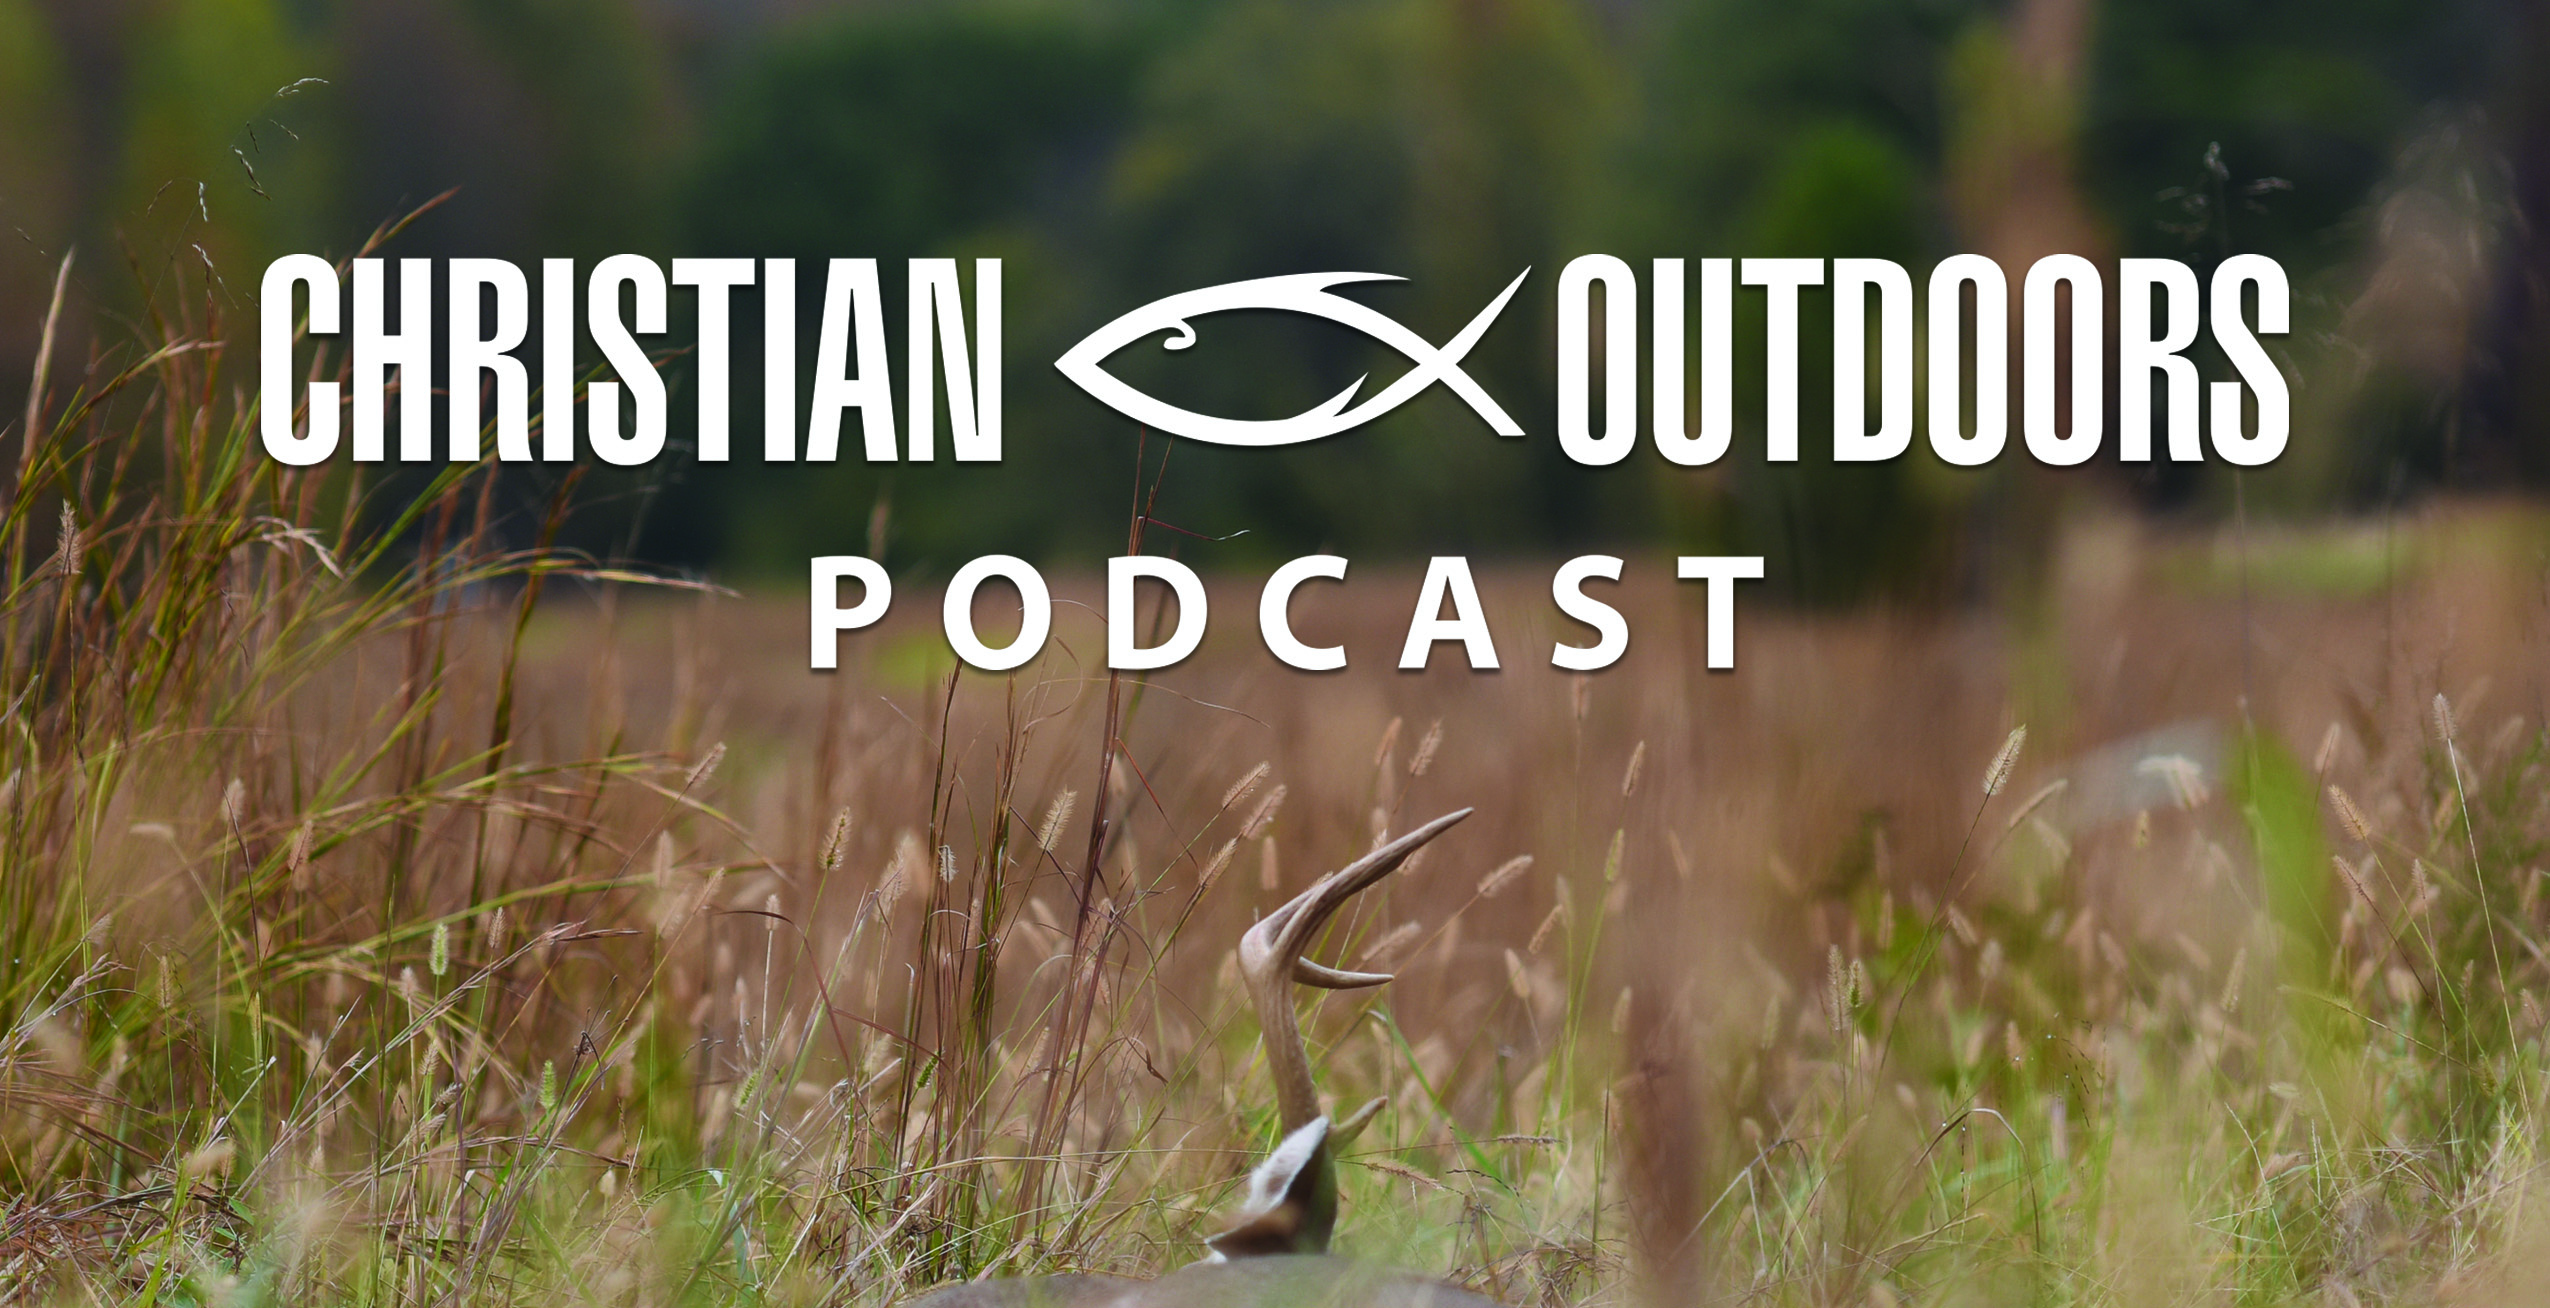 CHRISTIAN OUTDOORS PODCAST IMAGE ABOUT PAGE